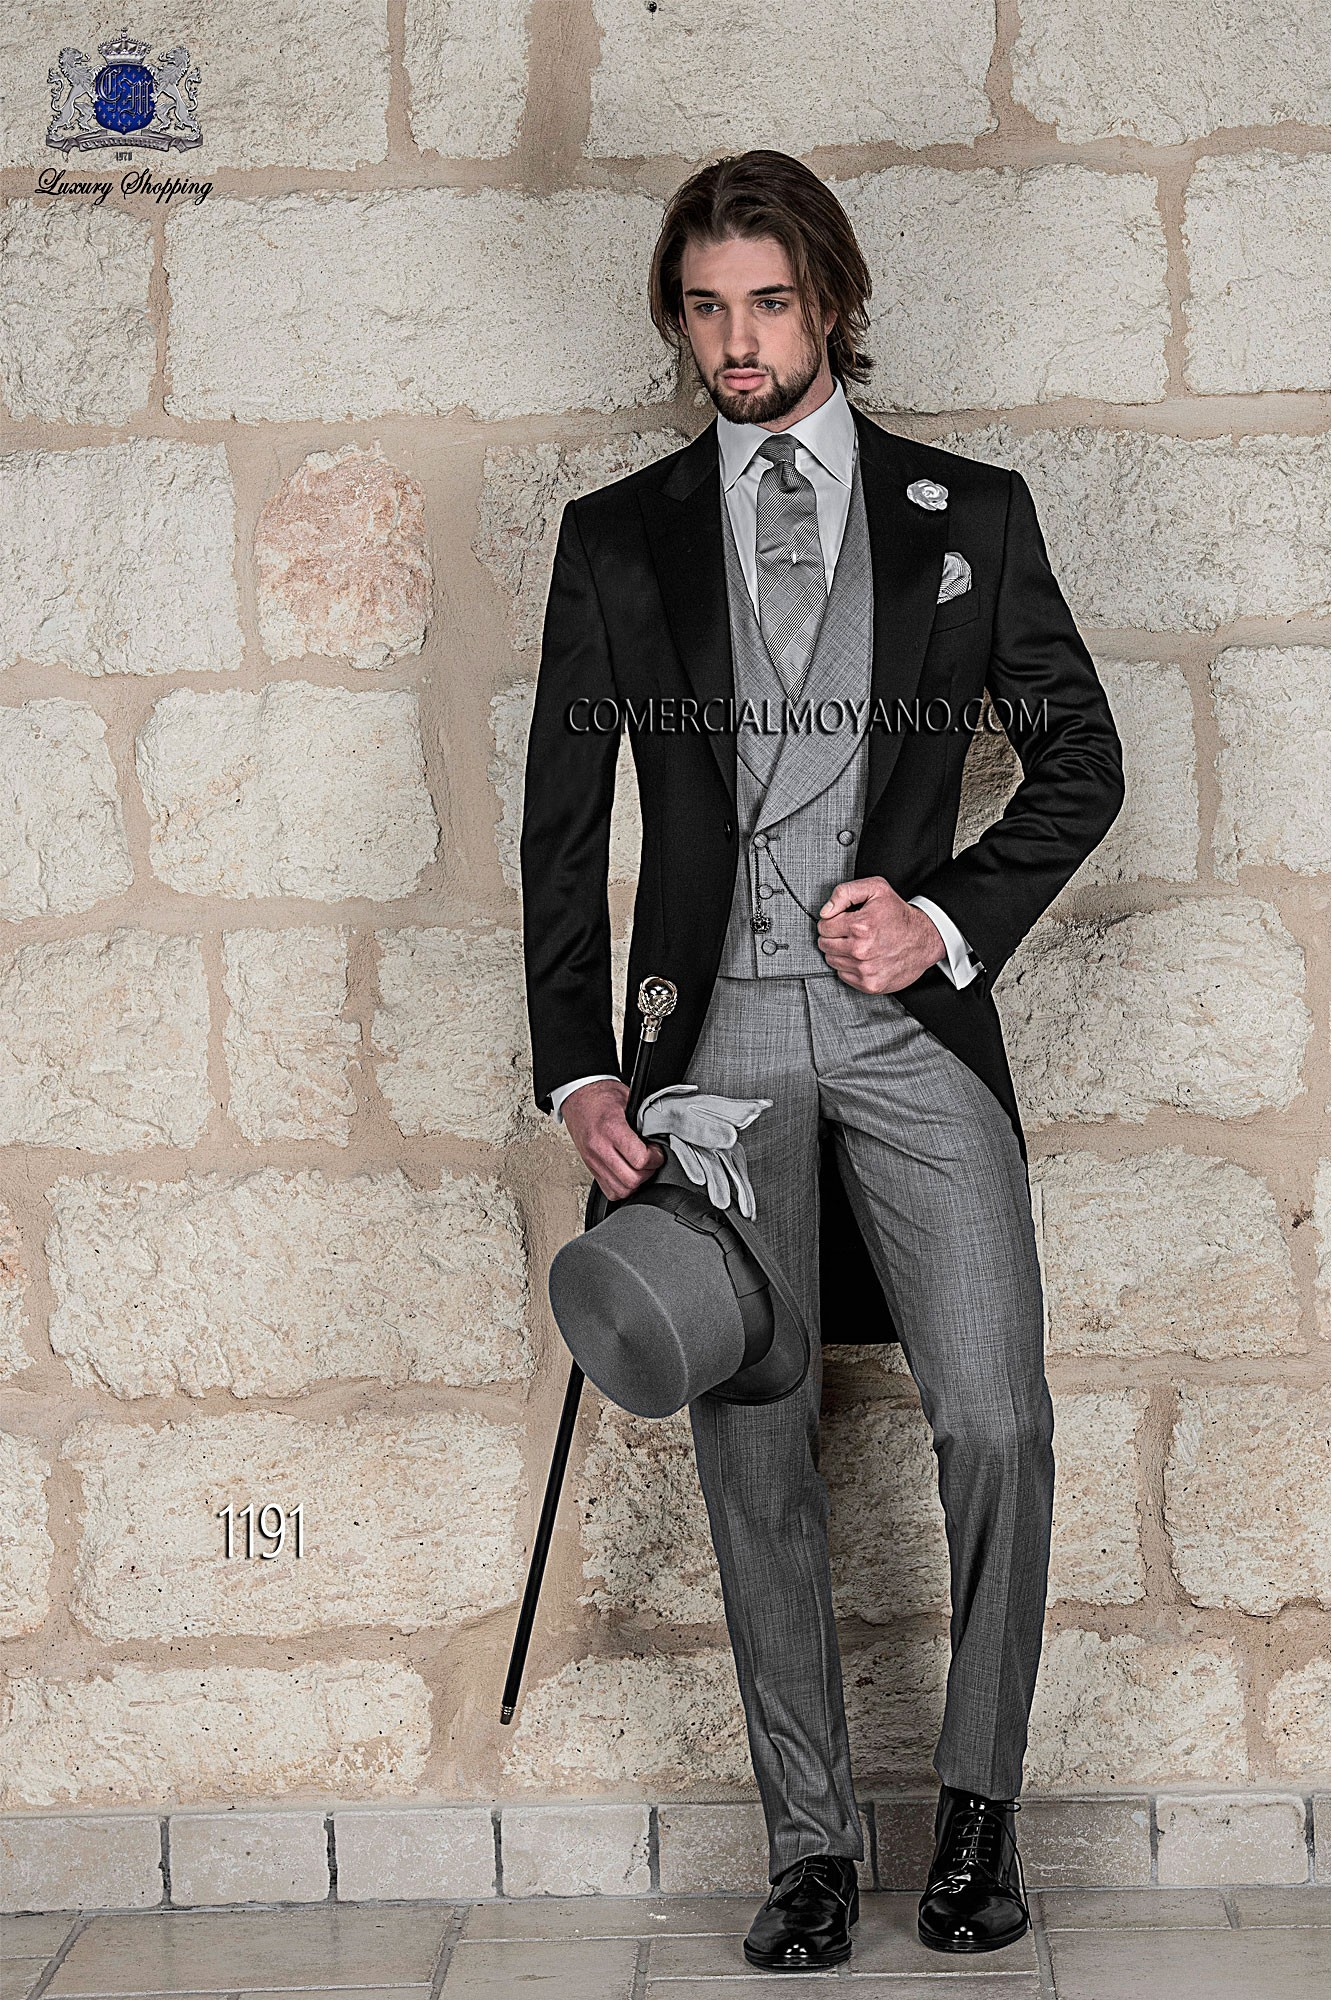 Gentleman black men wedding suit model 1191 Ottavio Nuccio Gala